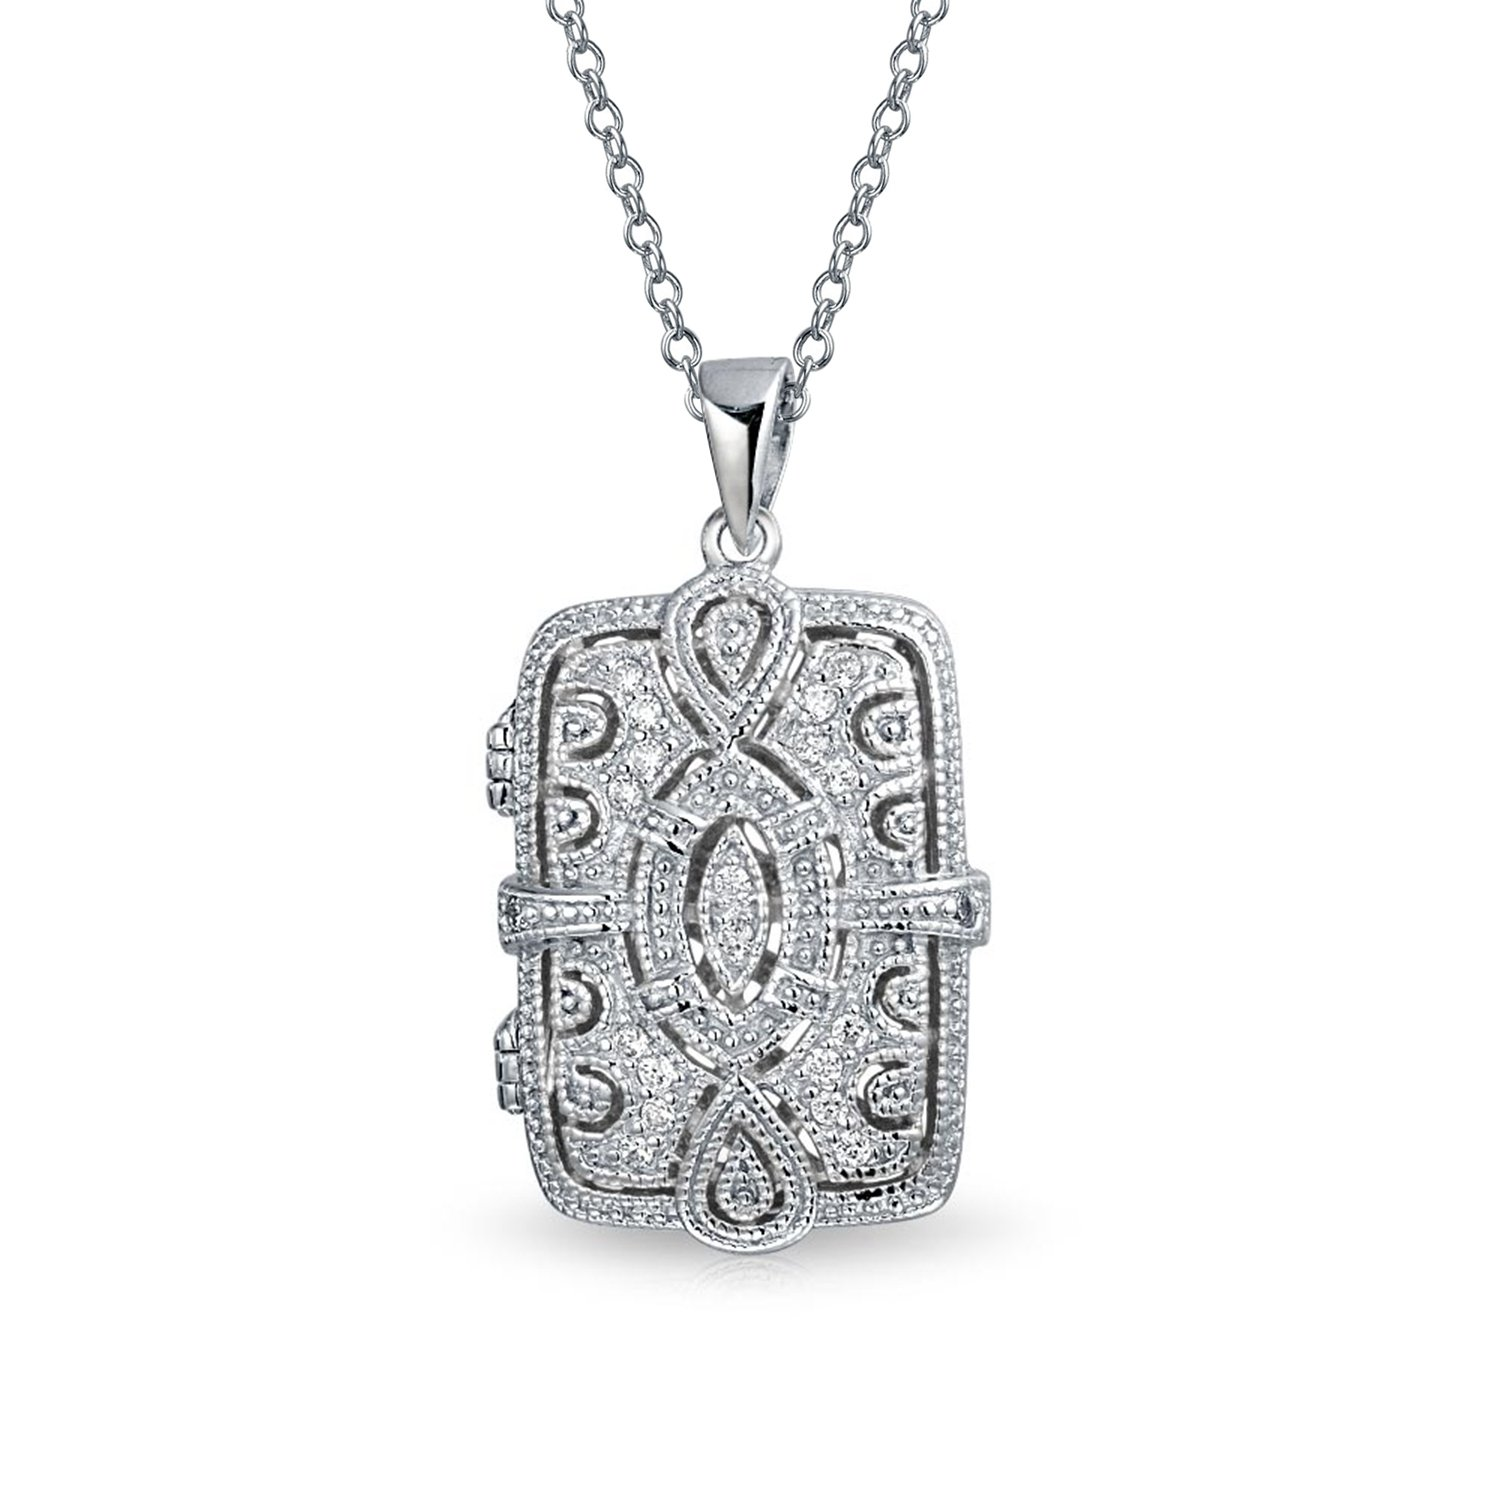 Vintage Style Filigree Cubic Zirconia CZ Rectangle Pendant Necklace Locket For Women For Mother 925 Sterling Silver